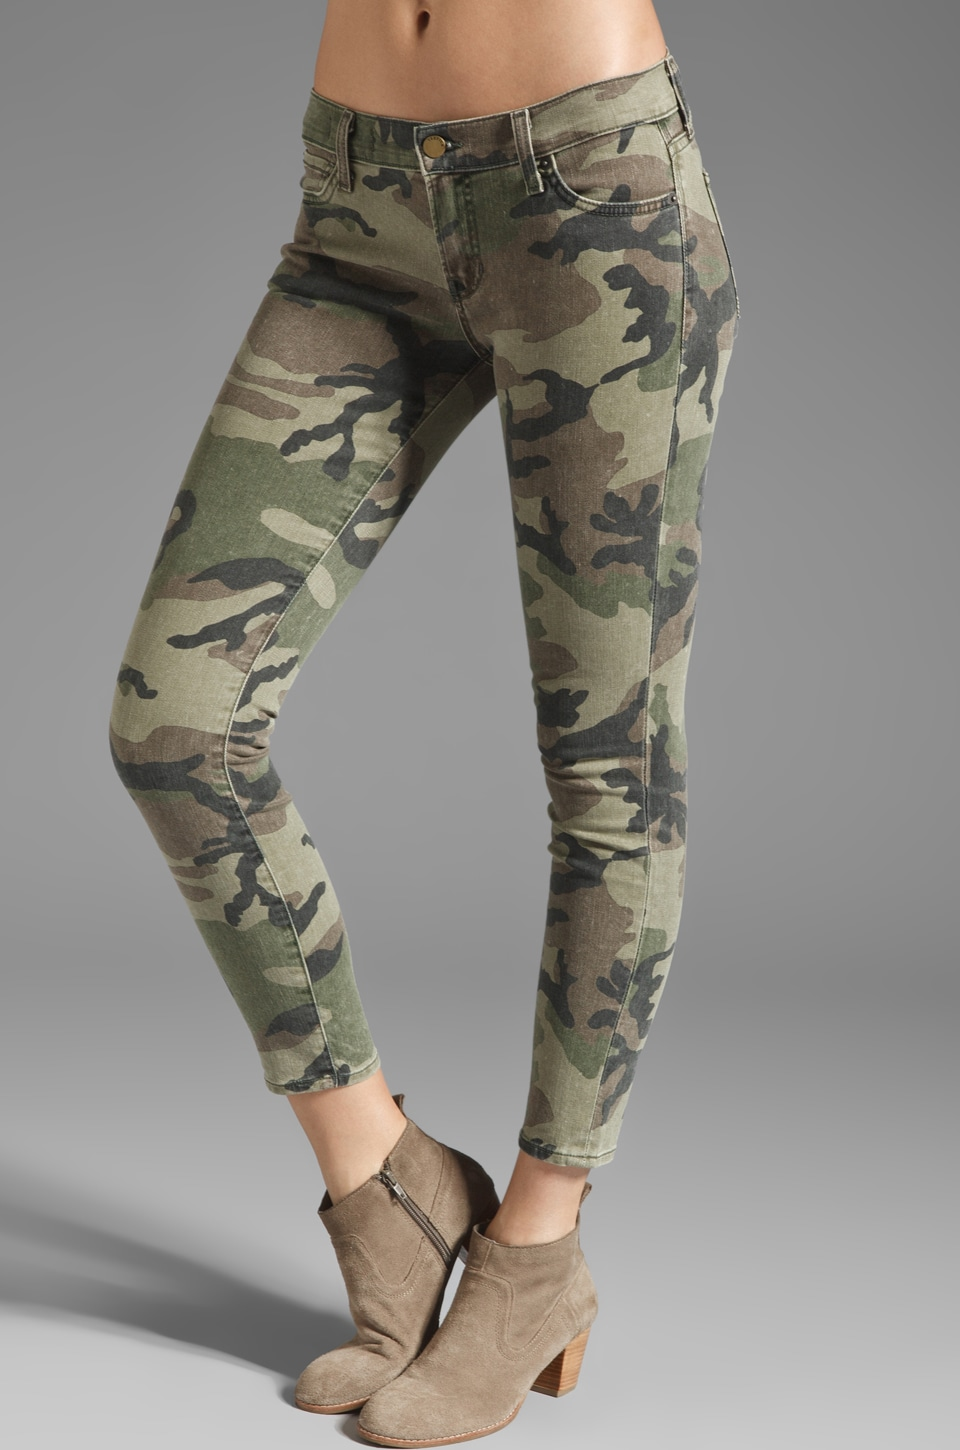 TEXTILE Elizabeth and James Ozzy Skinny in Olive Camo